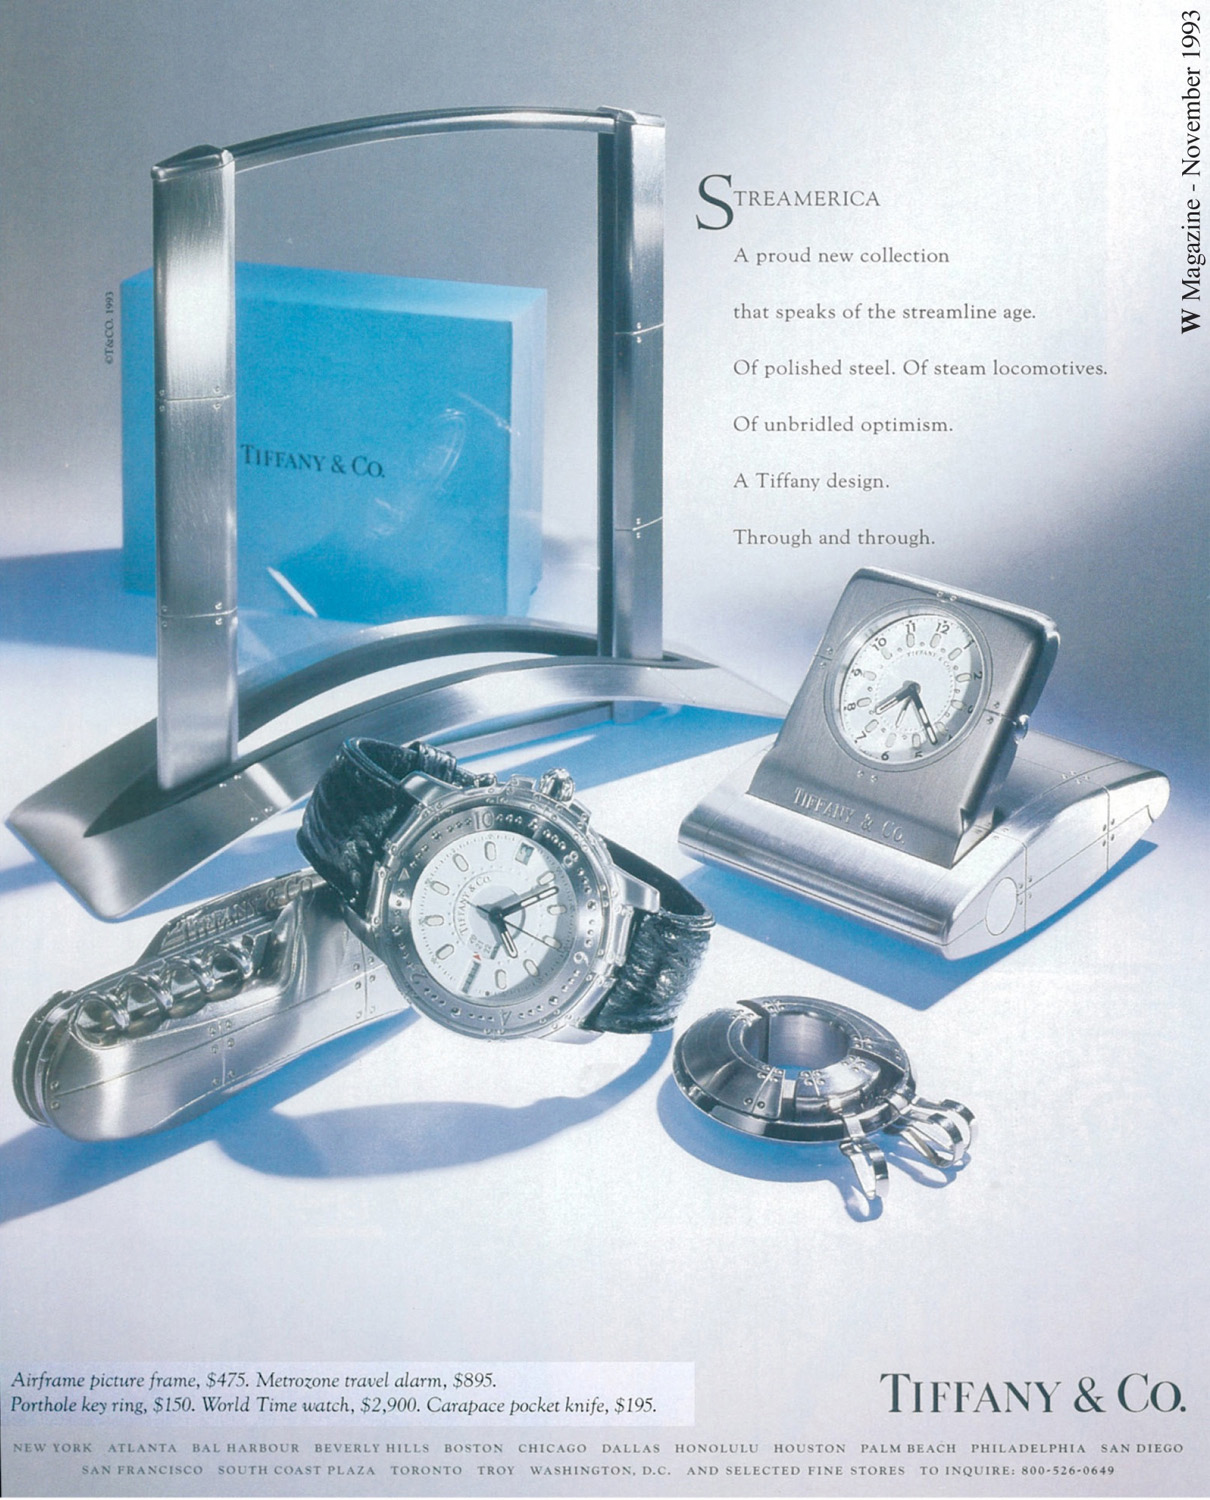 W Magazine Advertisement - Nov 1993 debut of the Streamerica Collection by Tiffany & Co. Airframe Large Picture Frame, Carapace Pocket Knife, World time Watch, Metrozone Travel Alarm, and Porthole Key Ring.